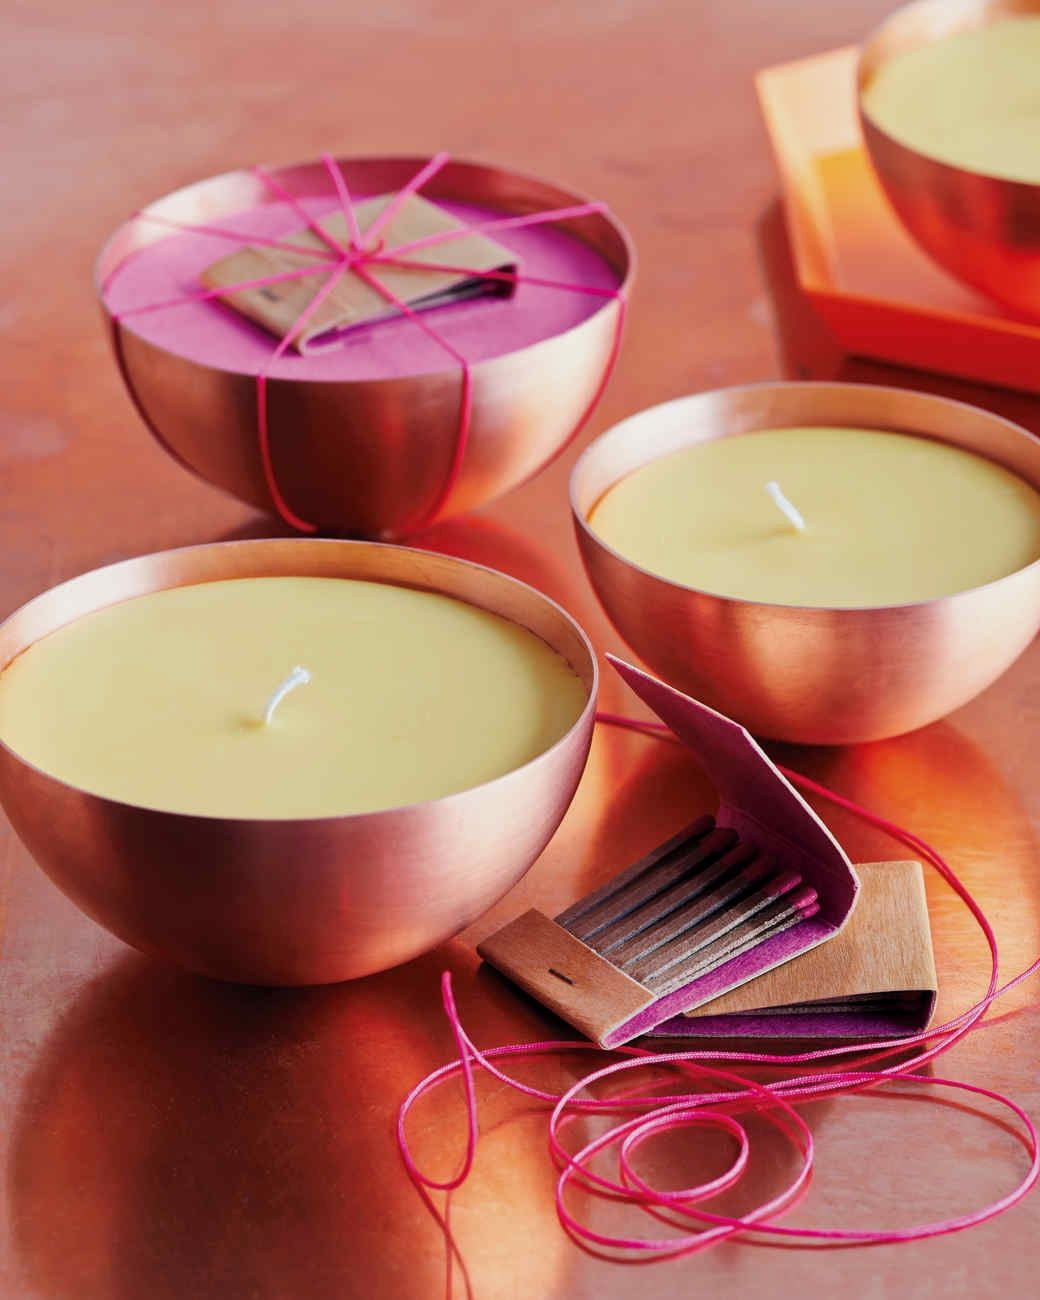 How To Make A Candle With Household Items #scentedcandles